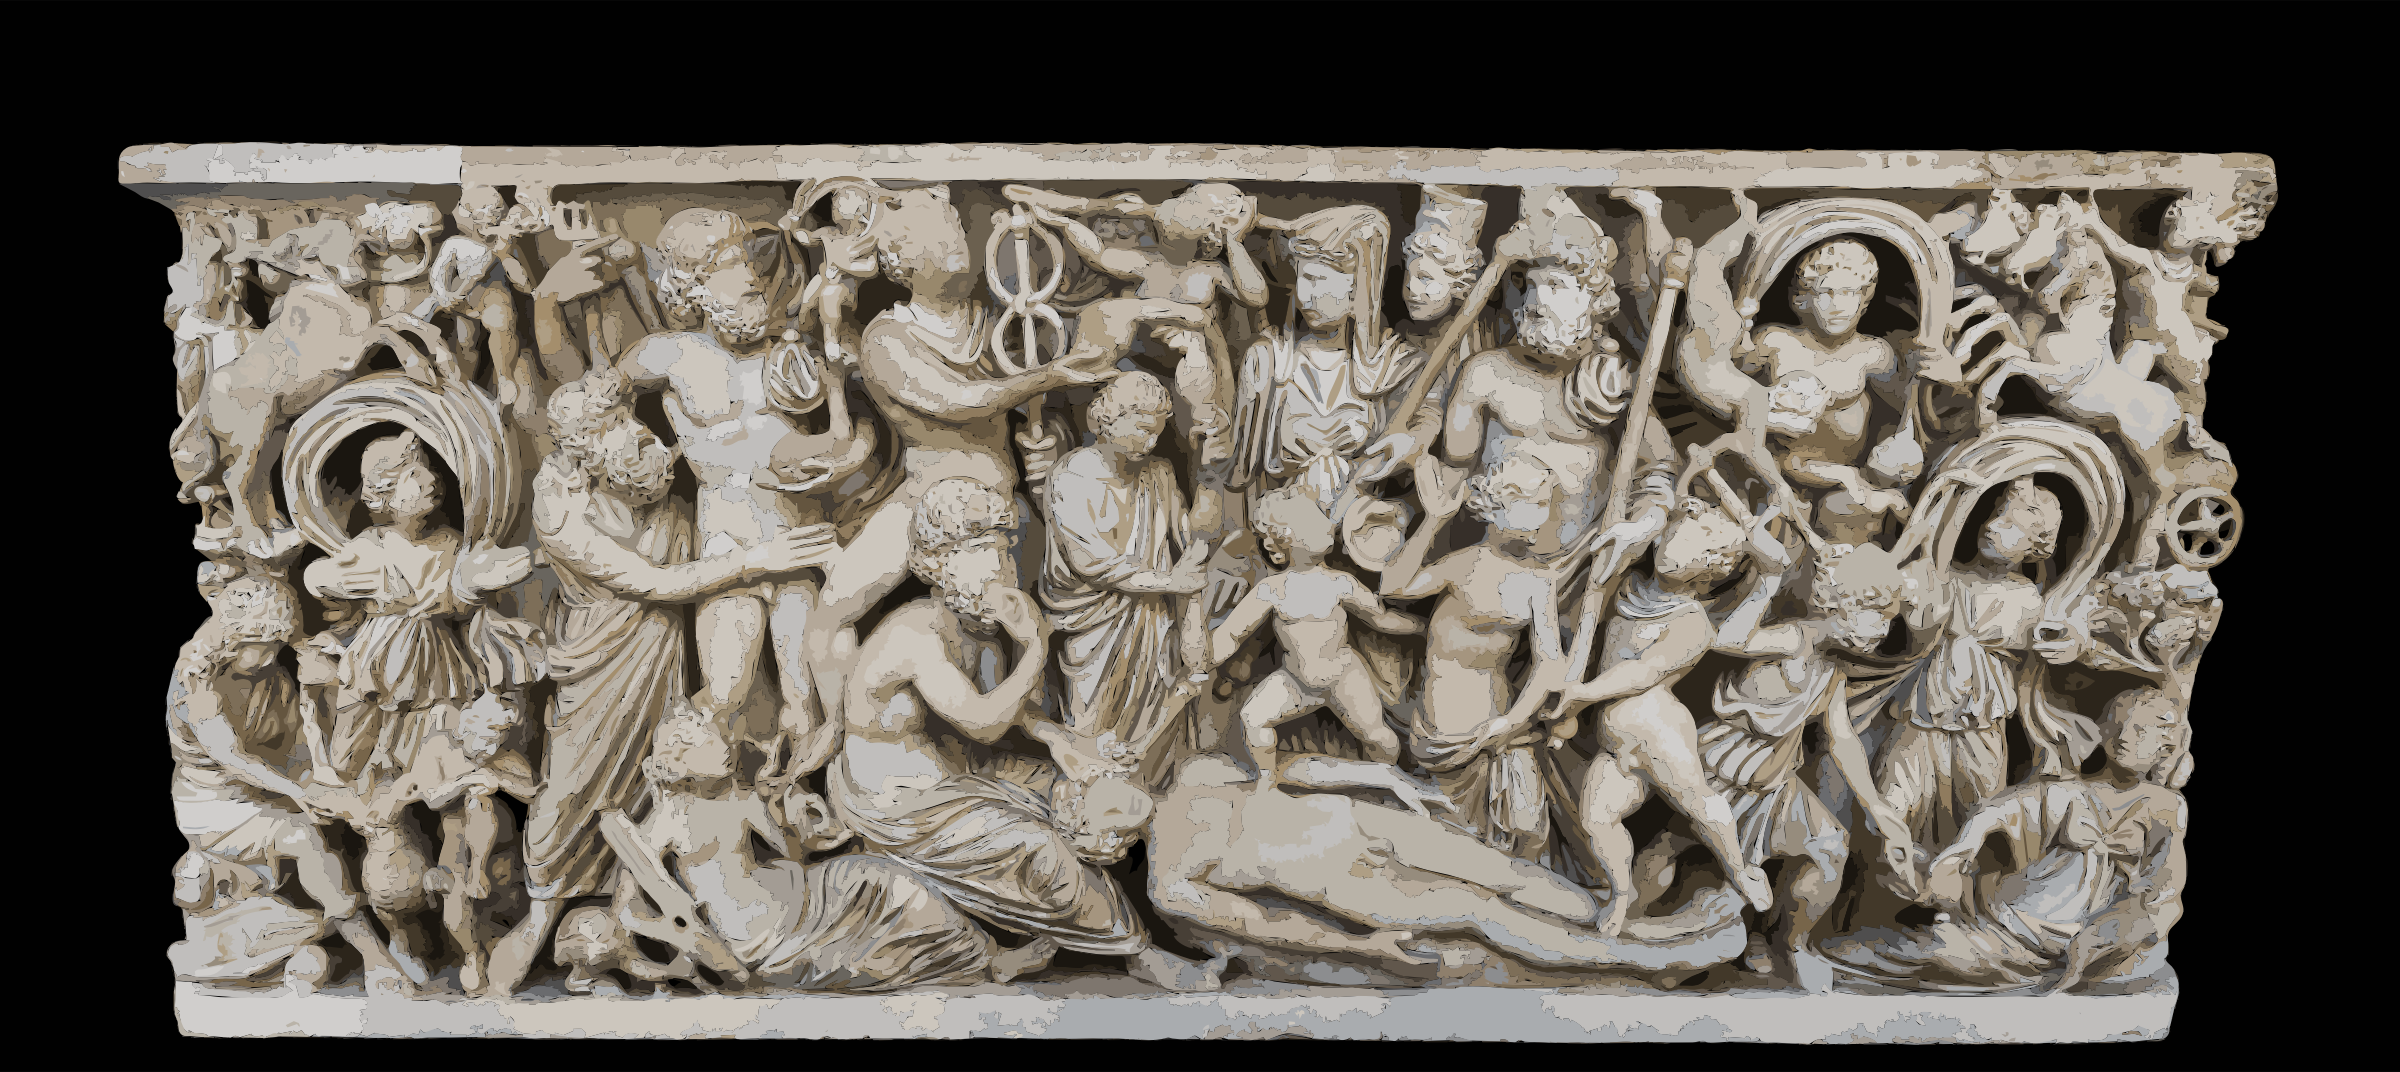 MANNapoli 6705 creation of the man sarcophagus by 5ncrcv+exryzbsq0bgao